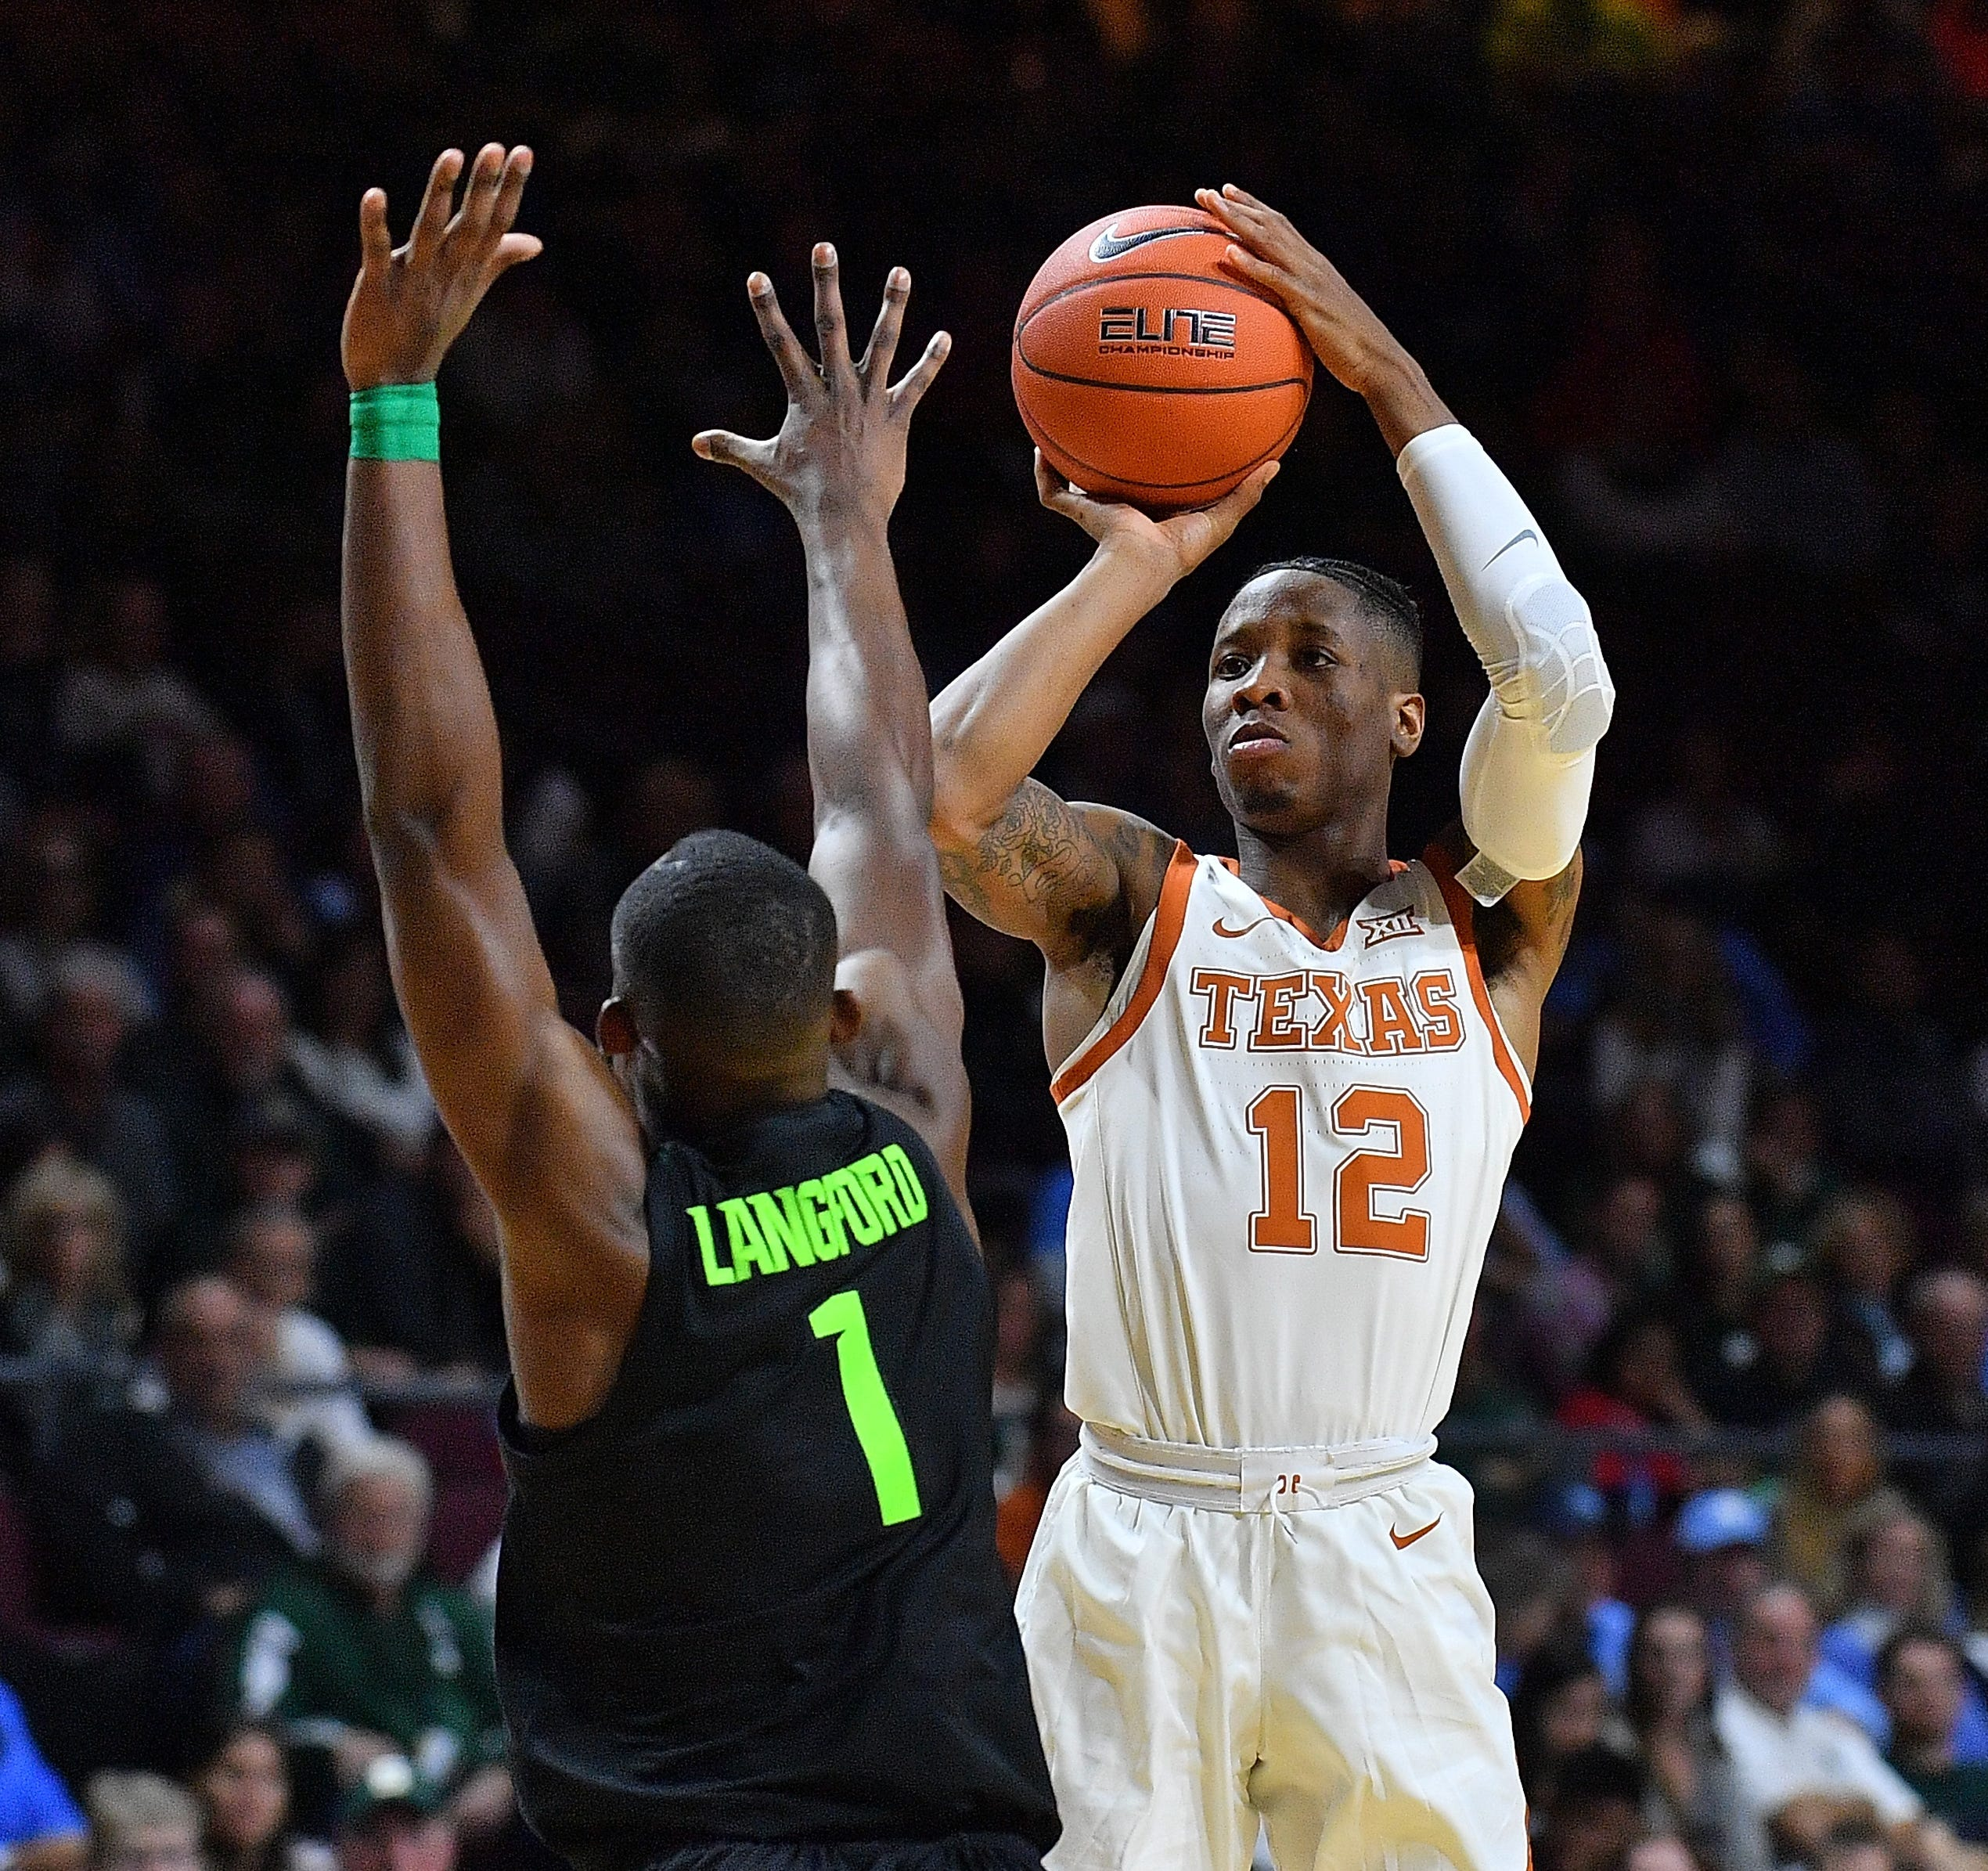 Texas' Kerwin Roach II shoots against Michigan State's Joshua Langford on Friday, Nov. 23, 2018, in Las Vegas.